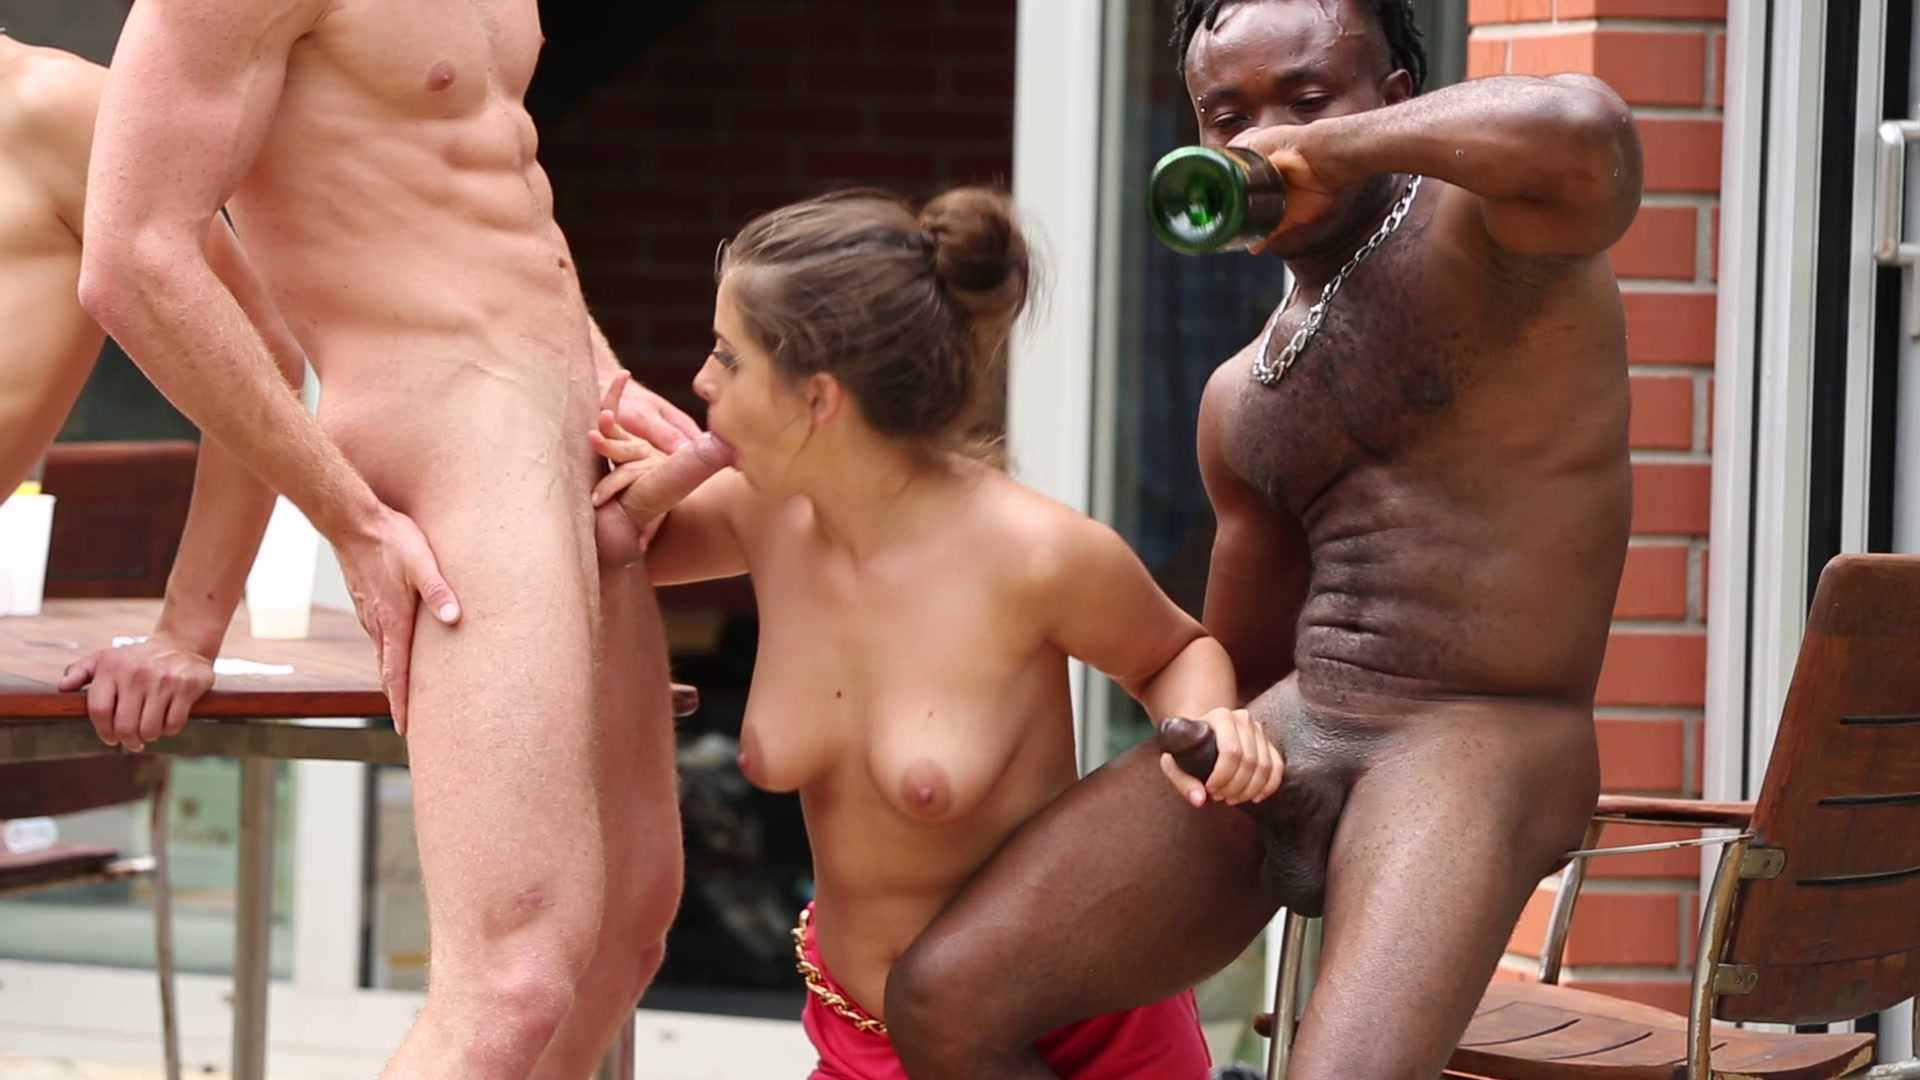 gallery Bisexual porn free